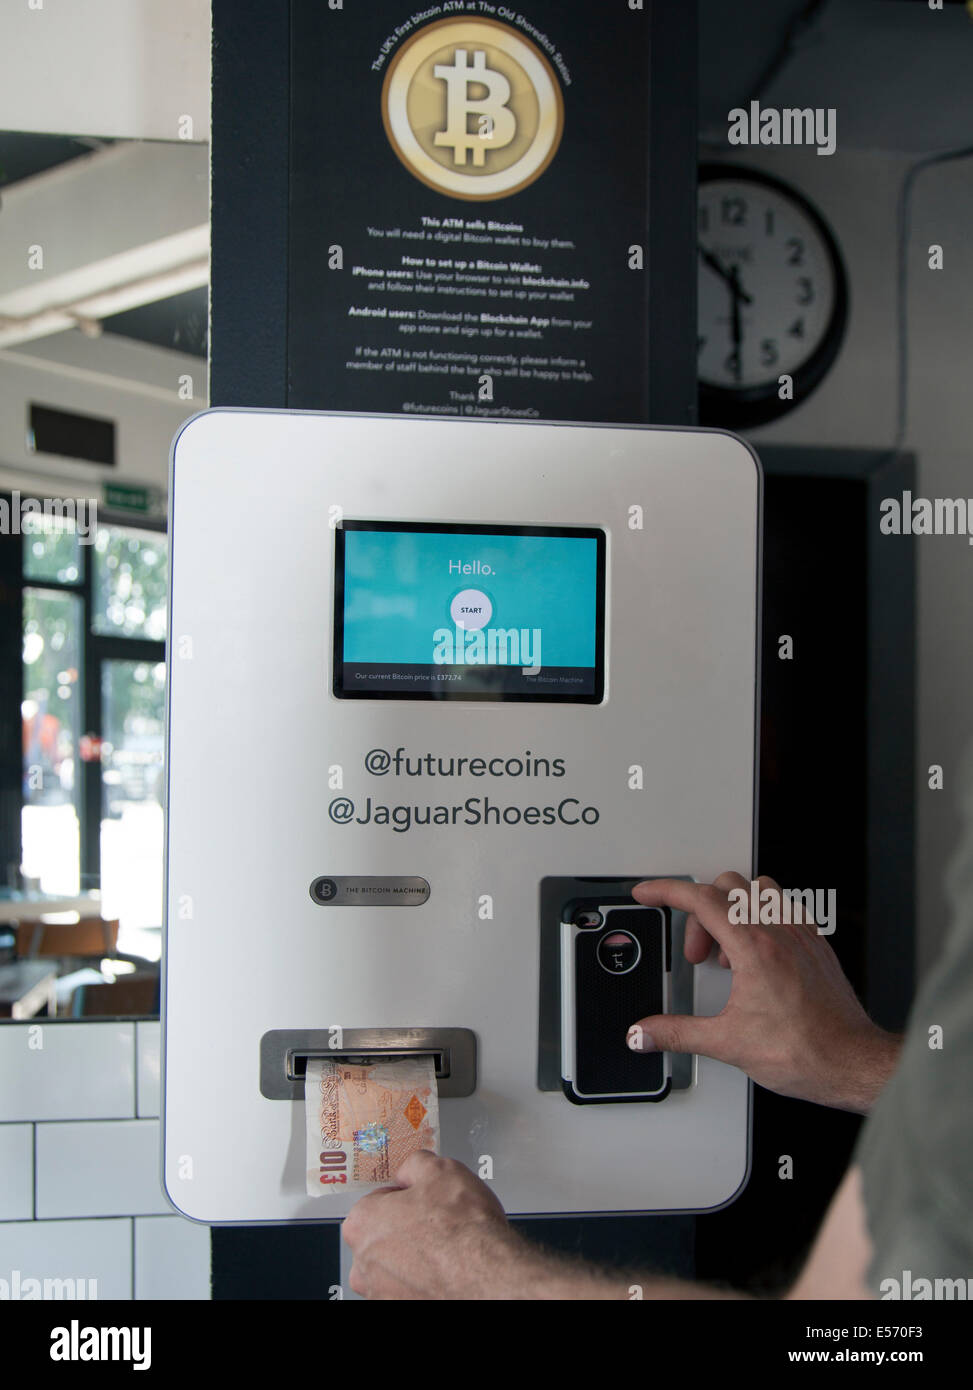 Uks First Bitcoin Atm In Old S Ditch Station Cafe Bar London